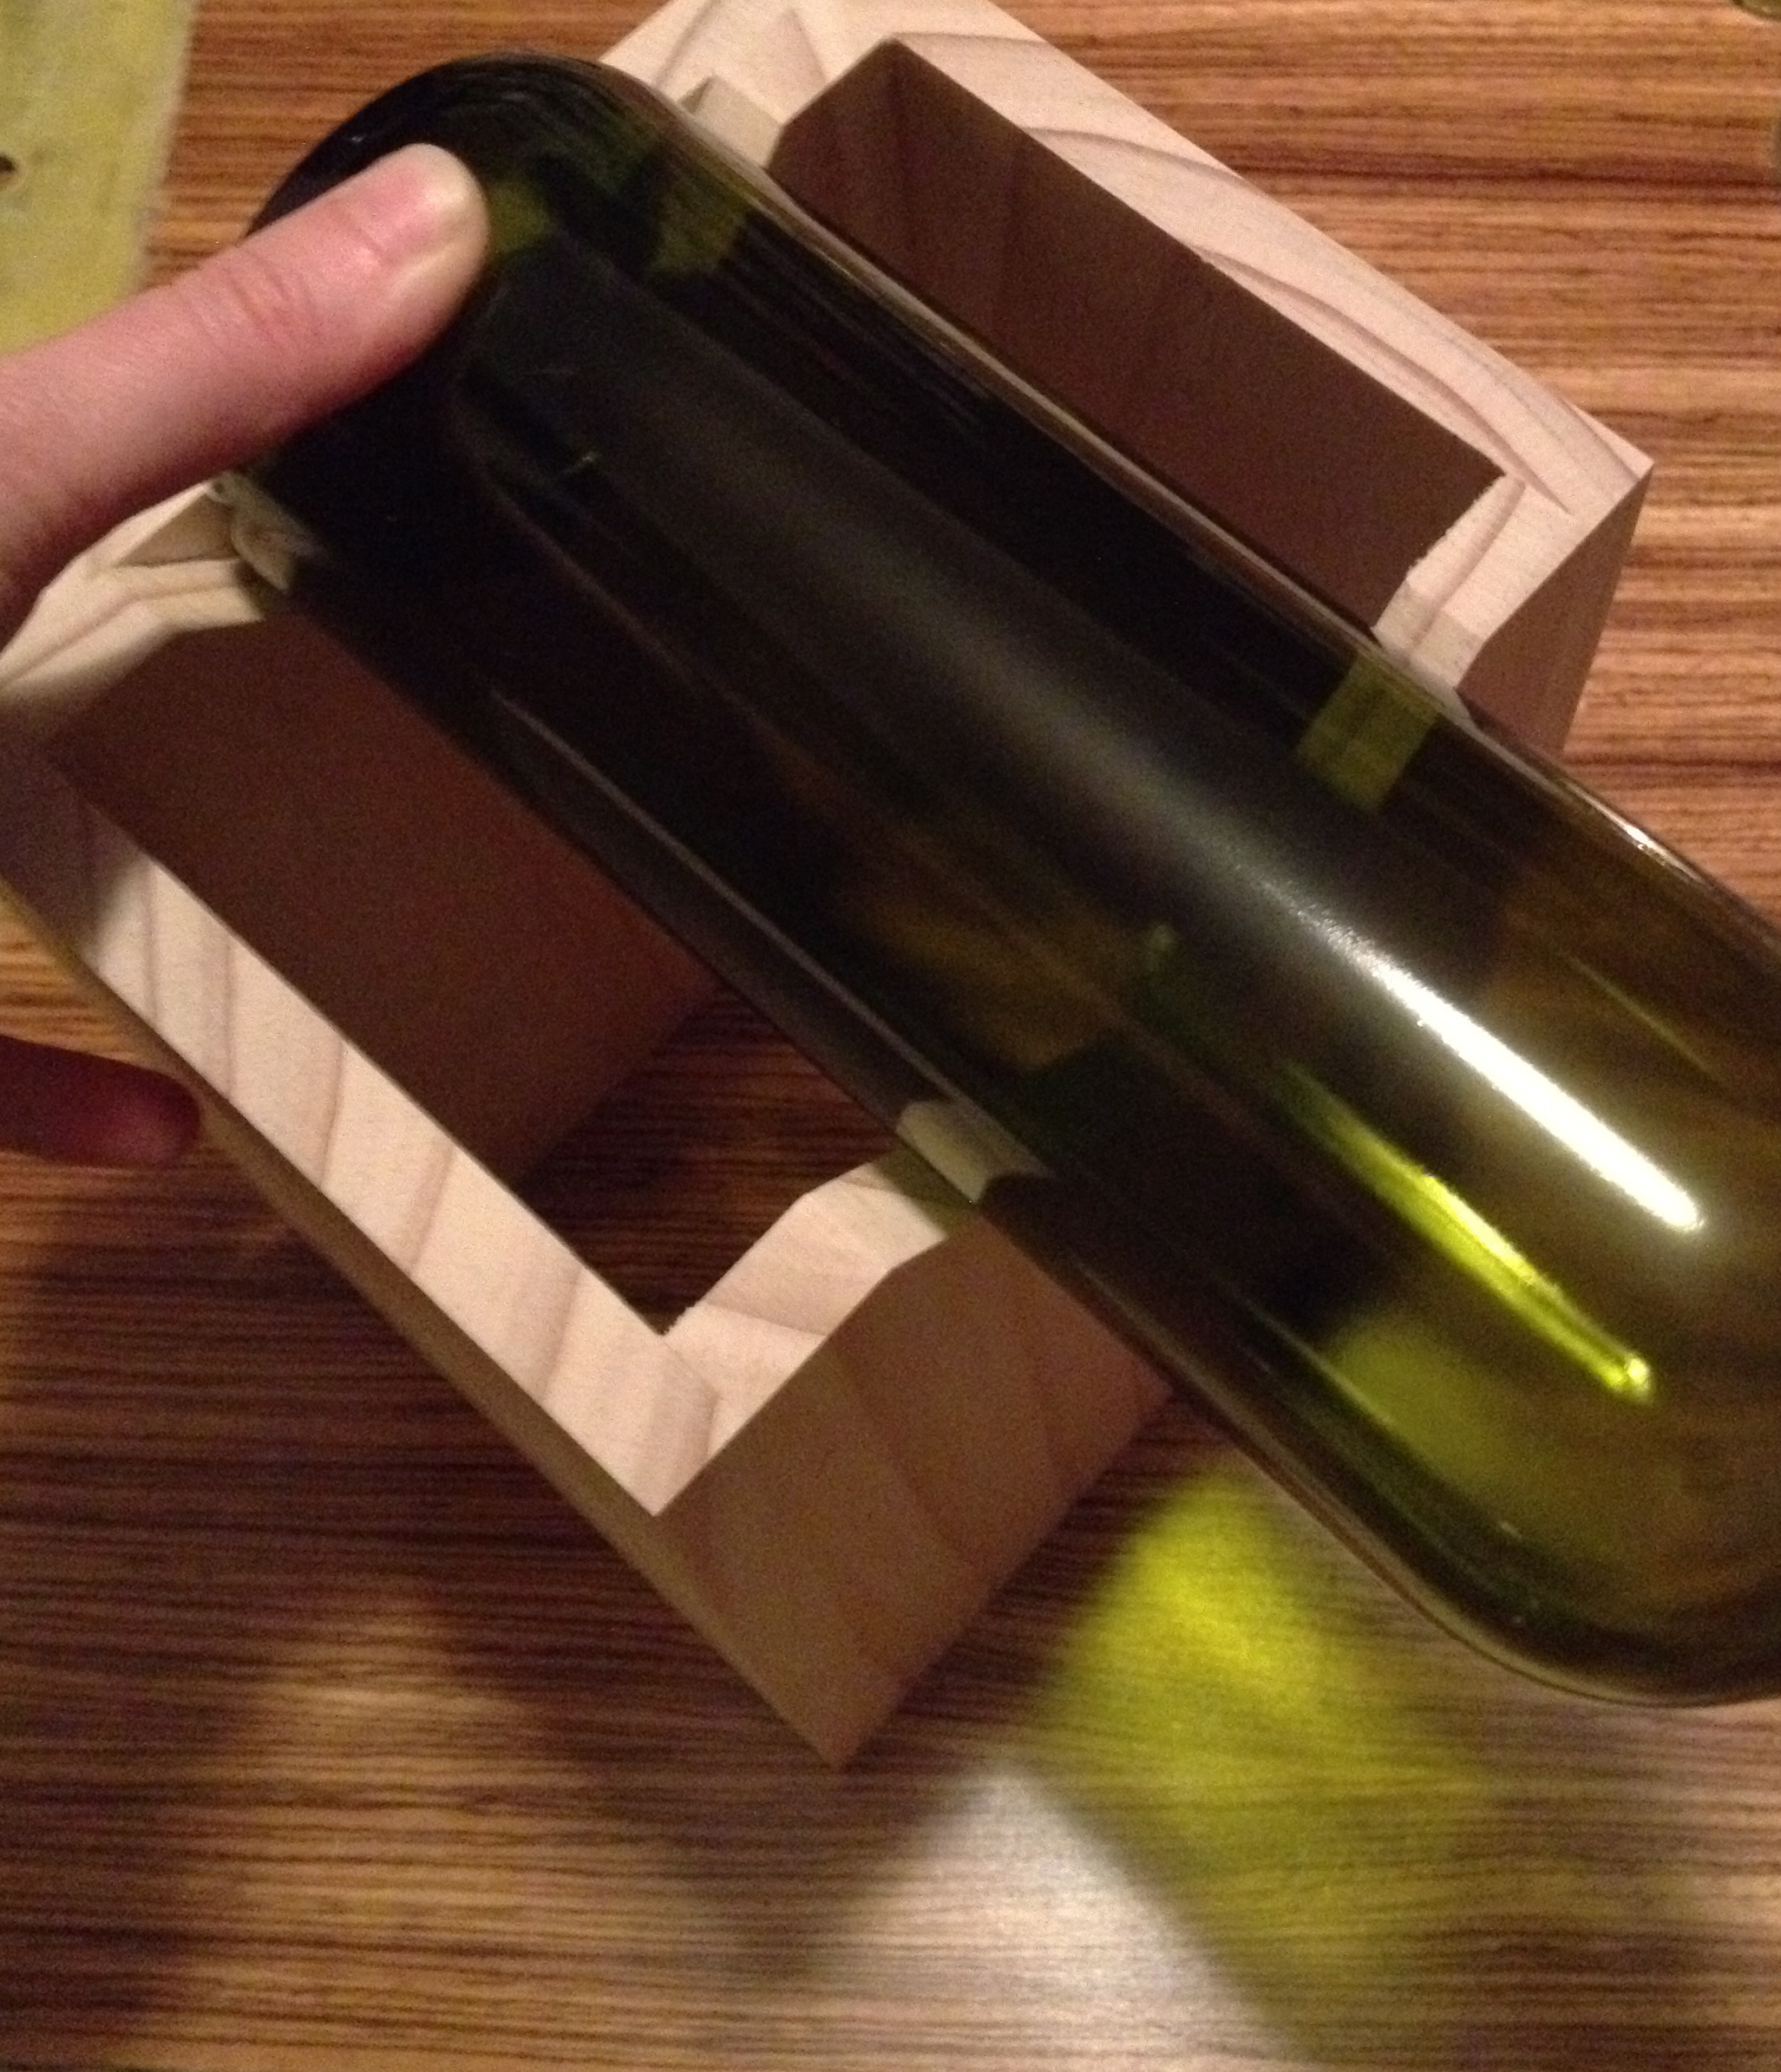 Want to cut wine bottles?  Build this jig!